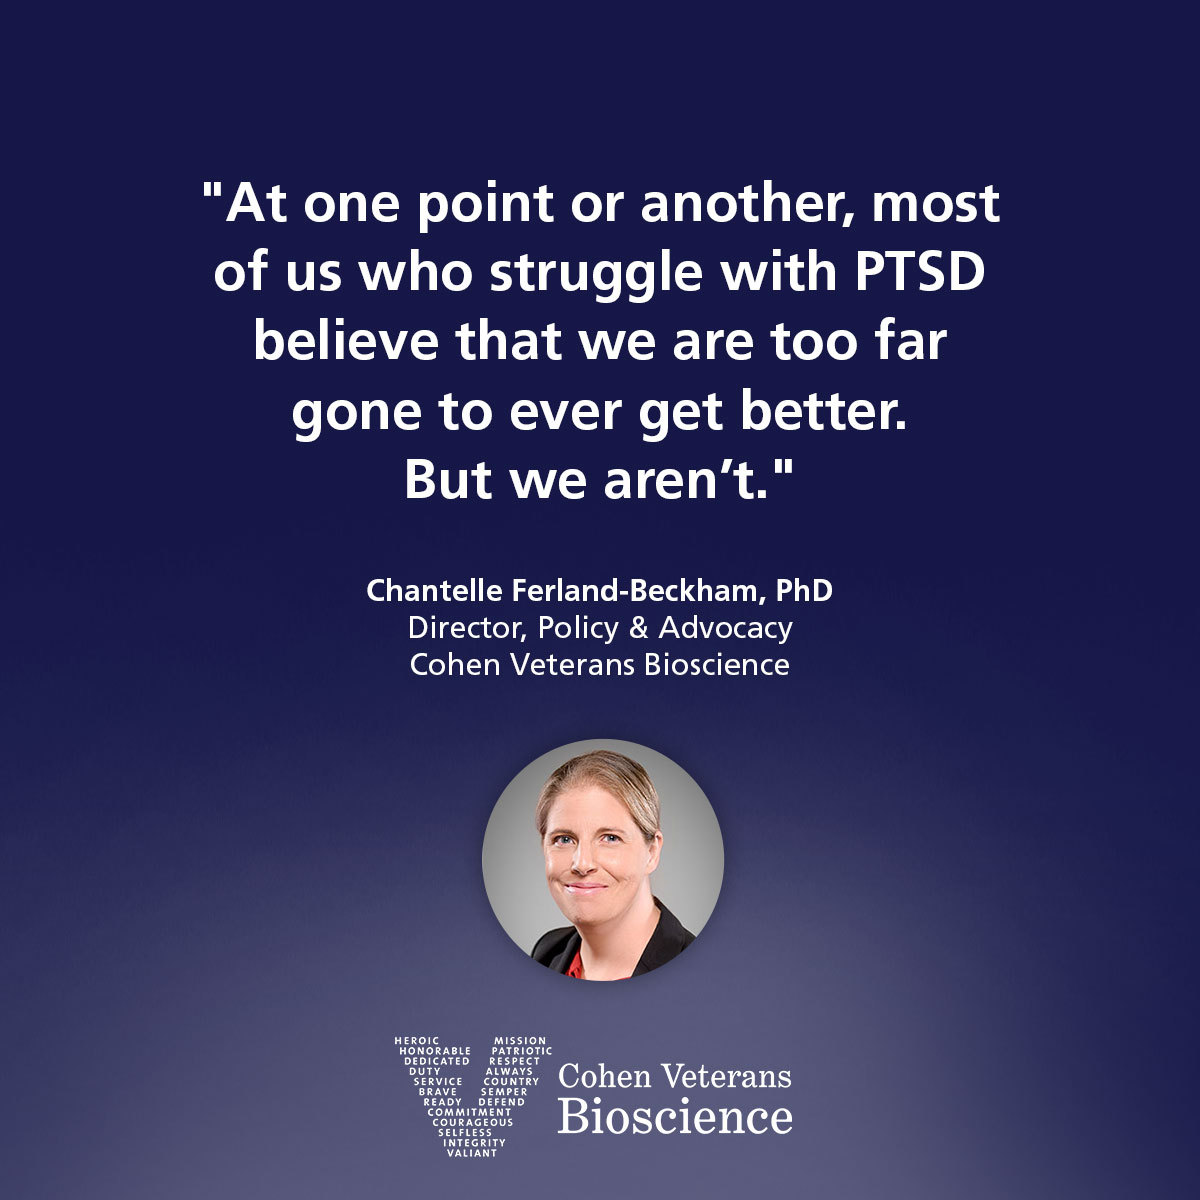 Quote from Dr. Chantelle Ferland-Beckham